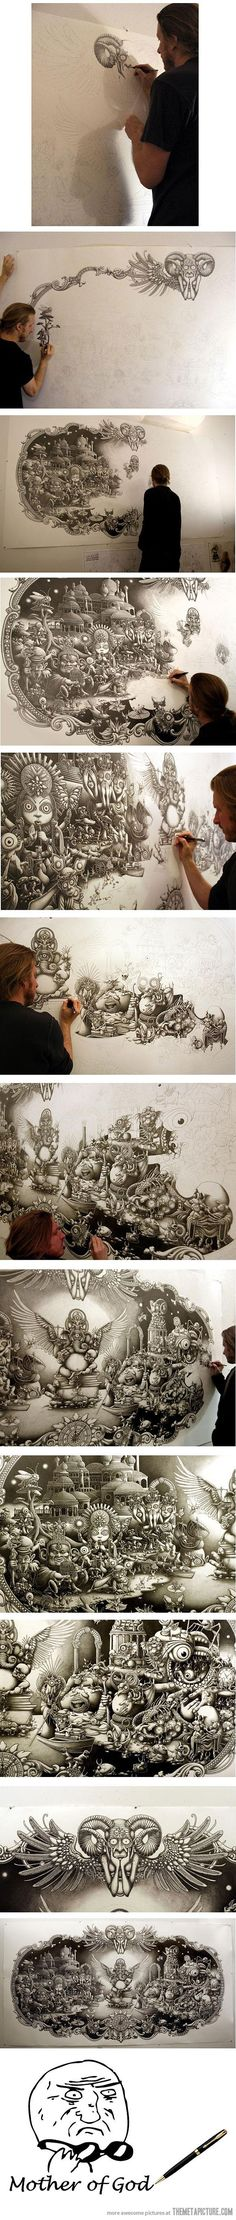 Awesome pen drawing